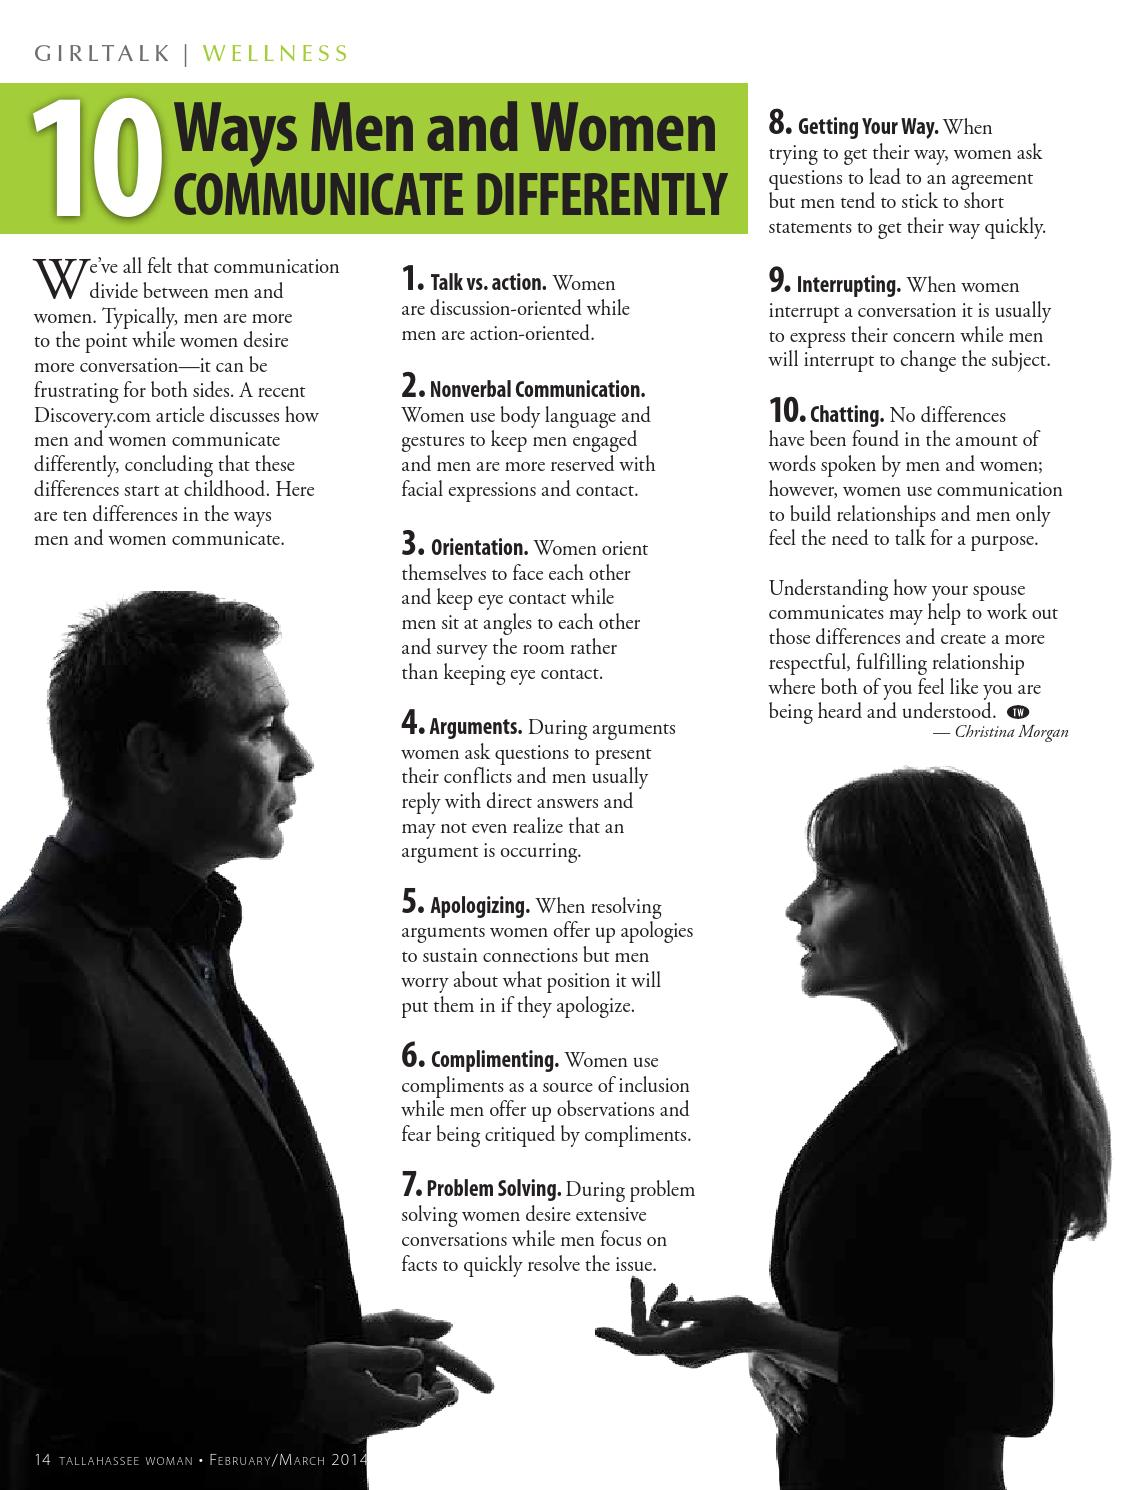 5 main differences as men and women use their body language